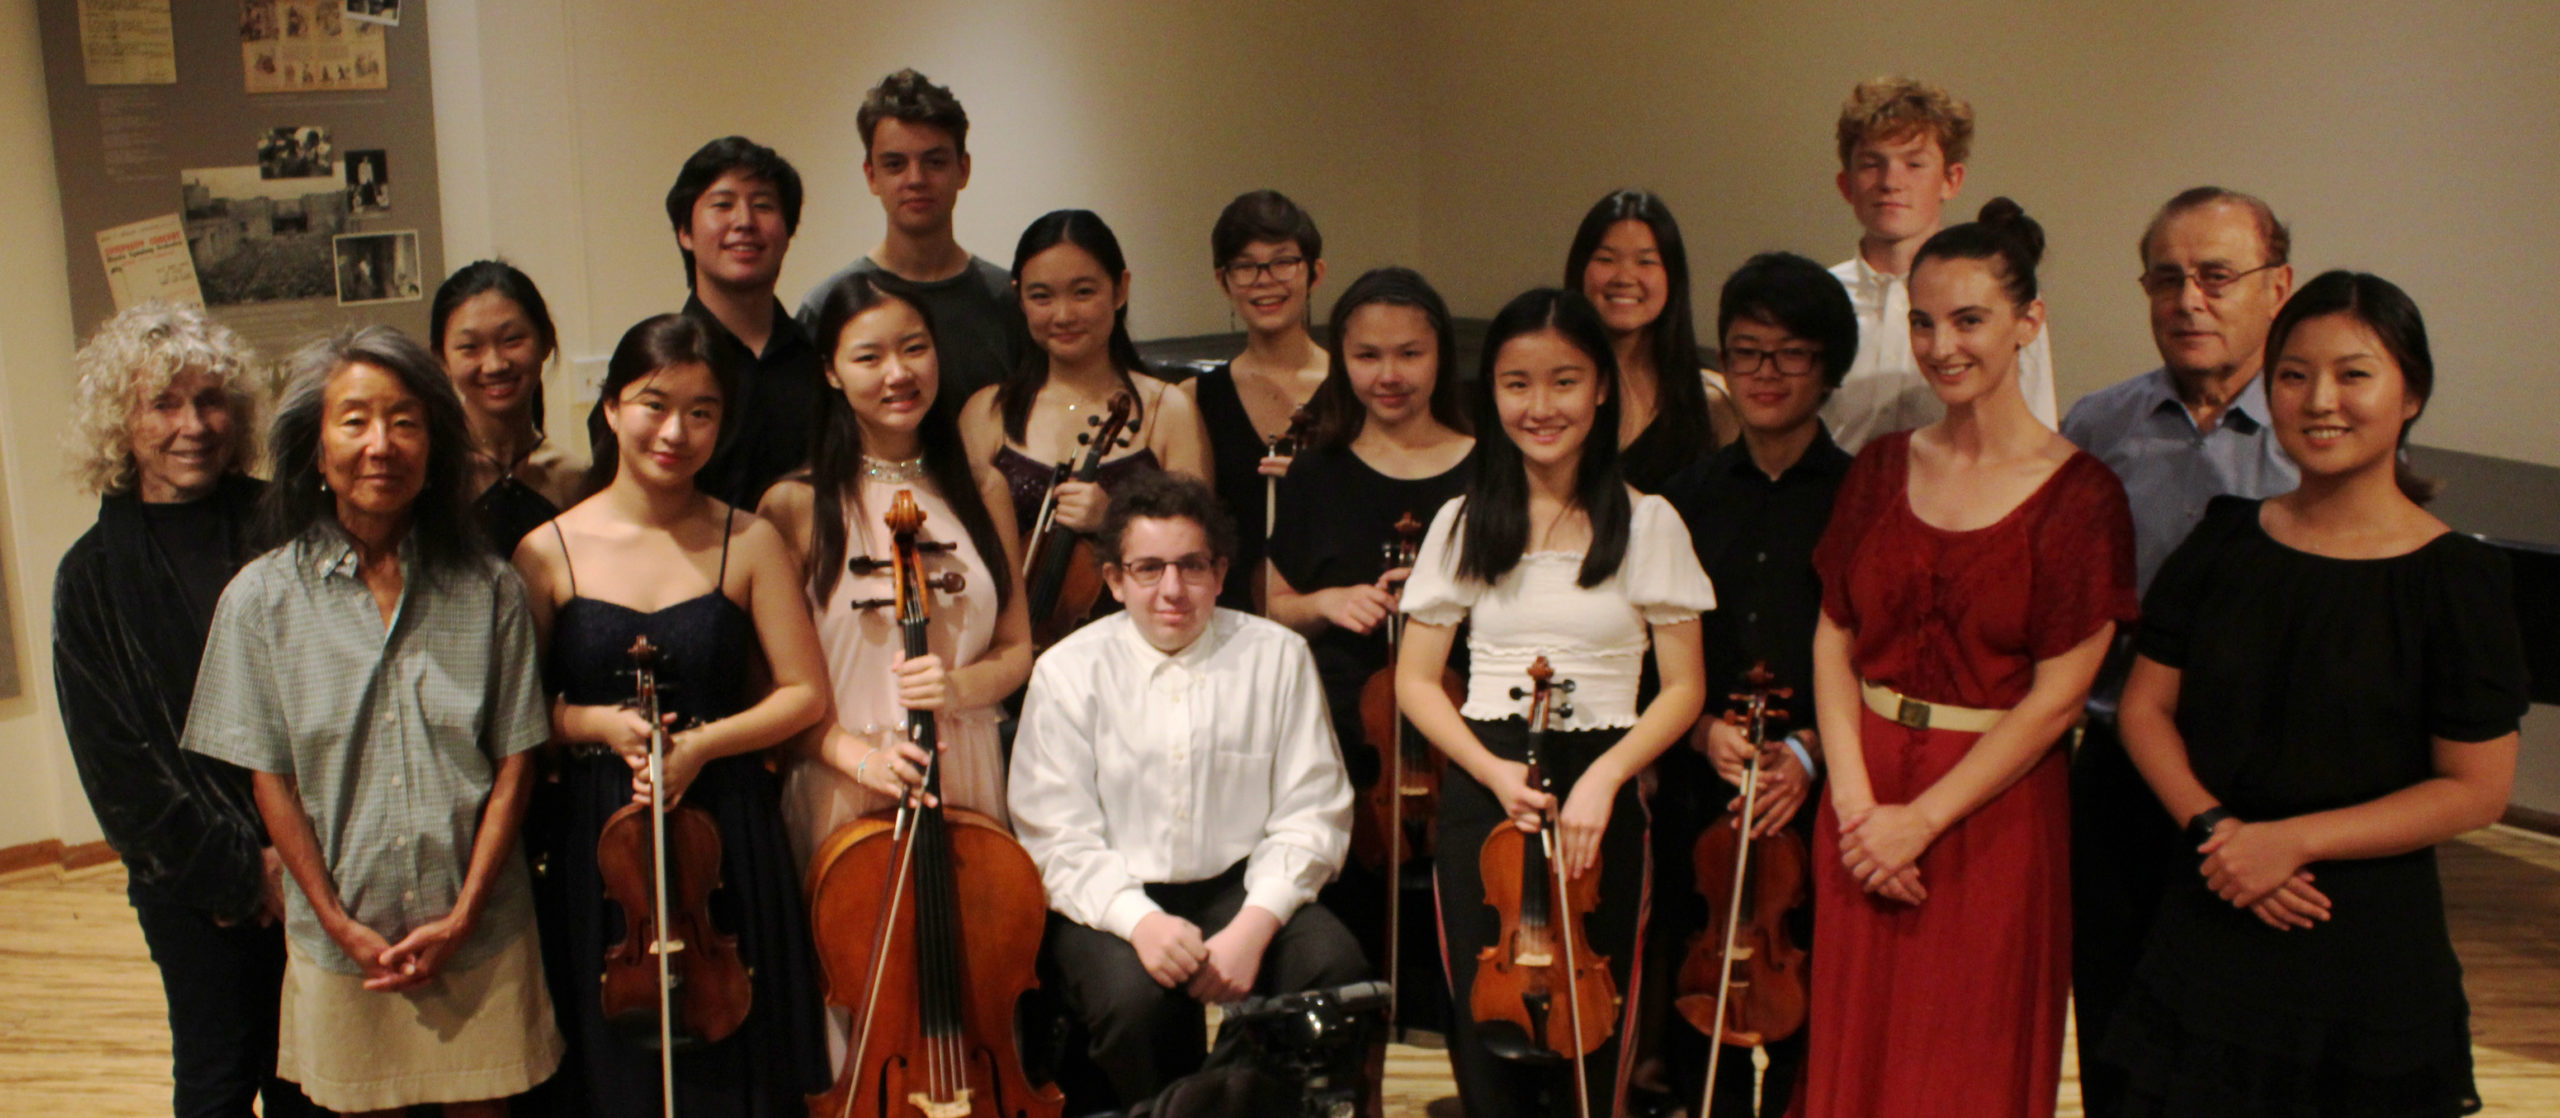 Copy of Jan 26 Crossroads Chamber Orchestra